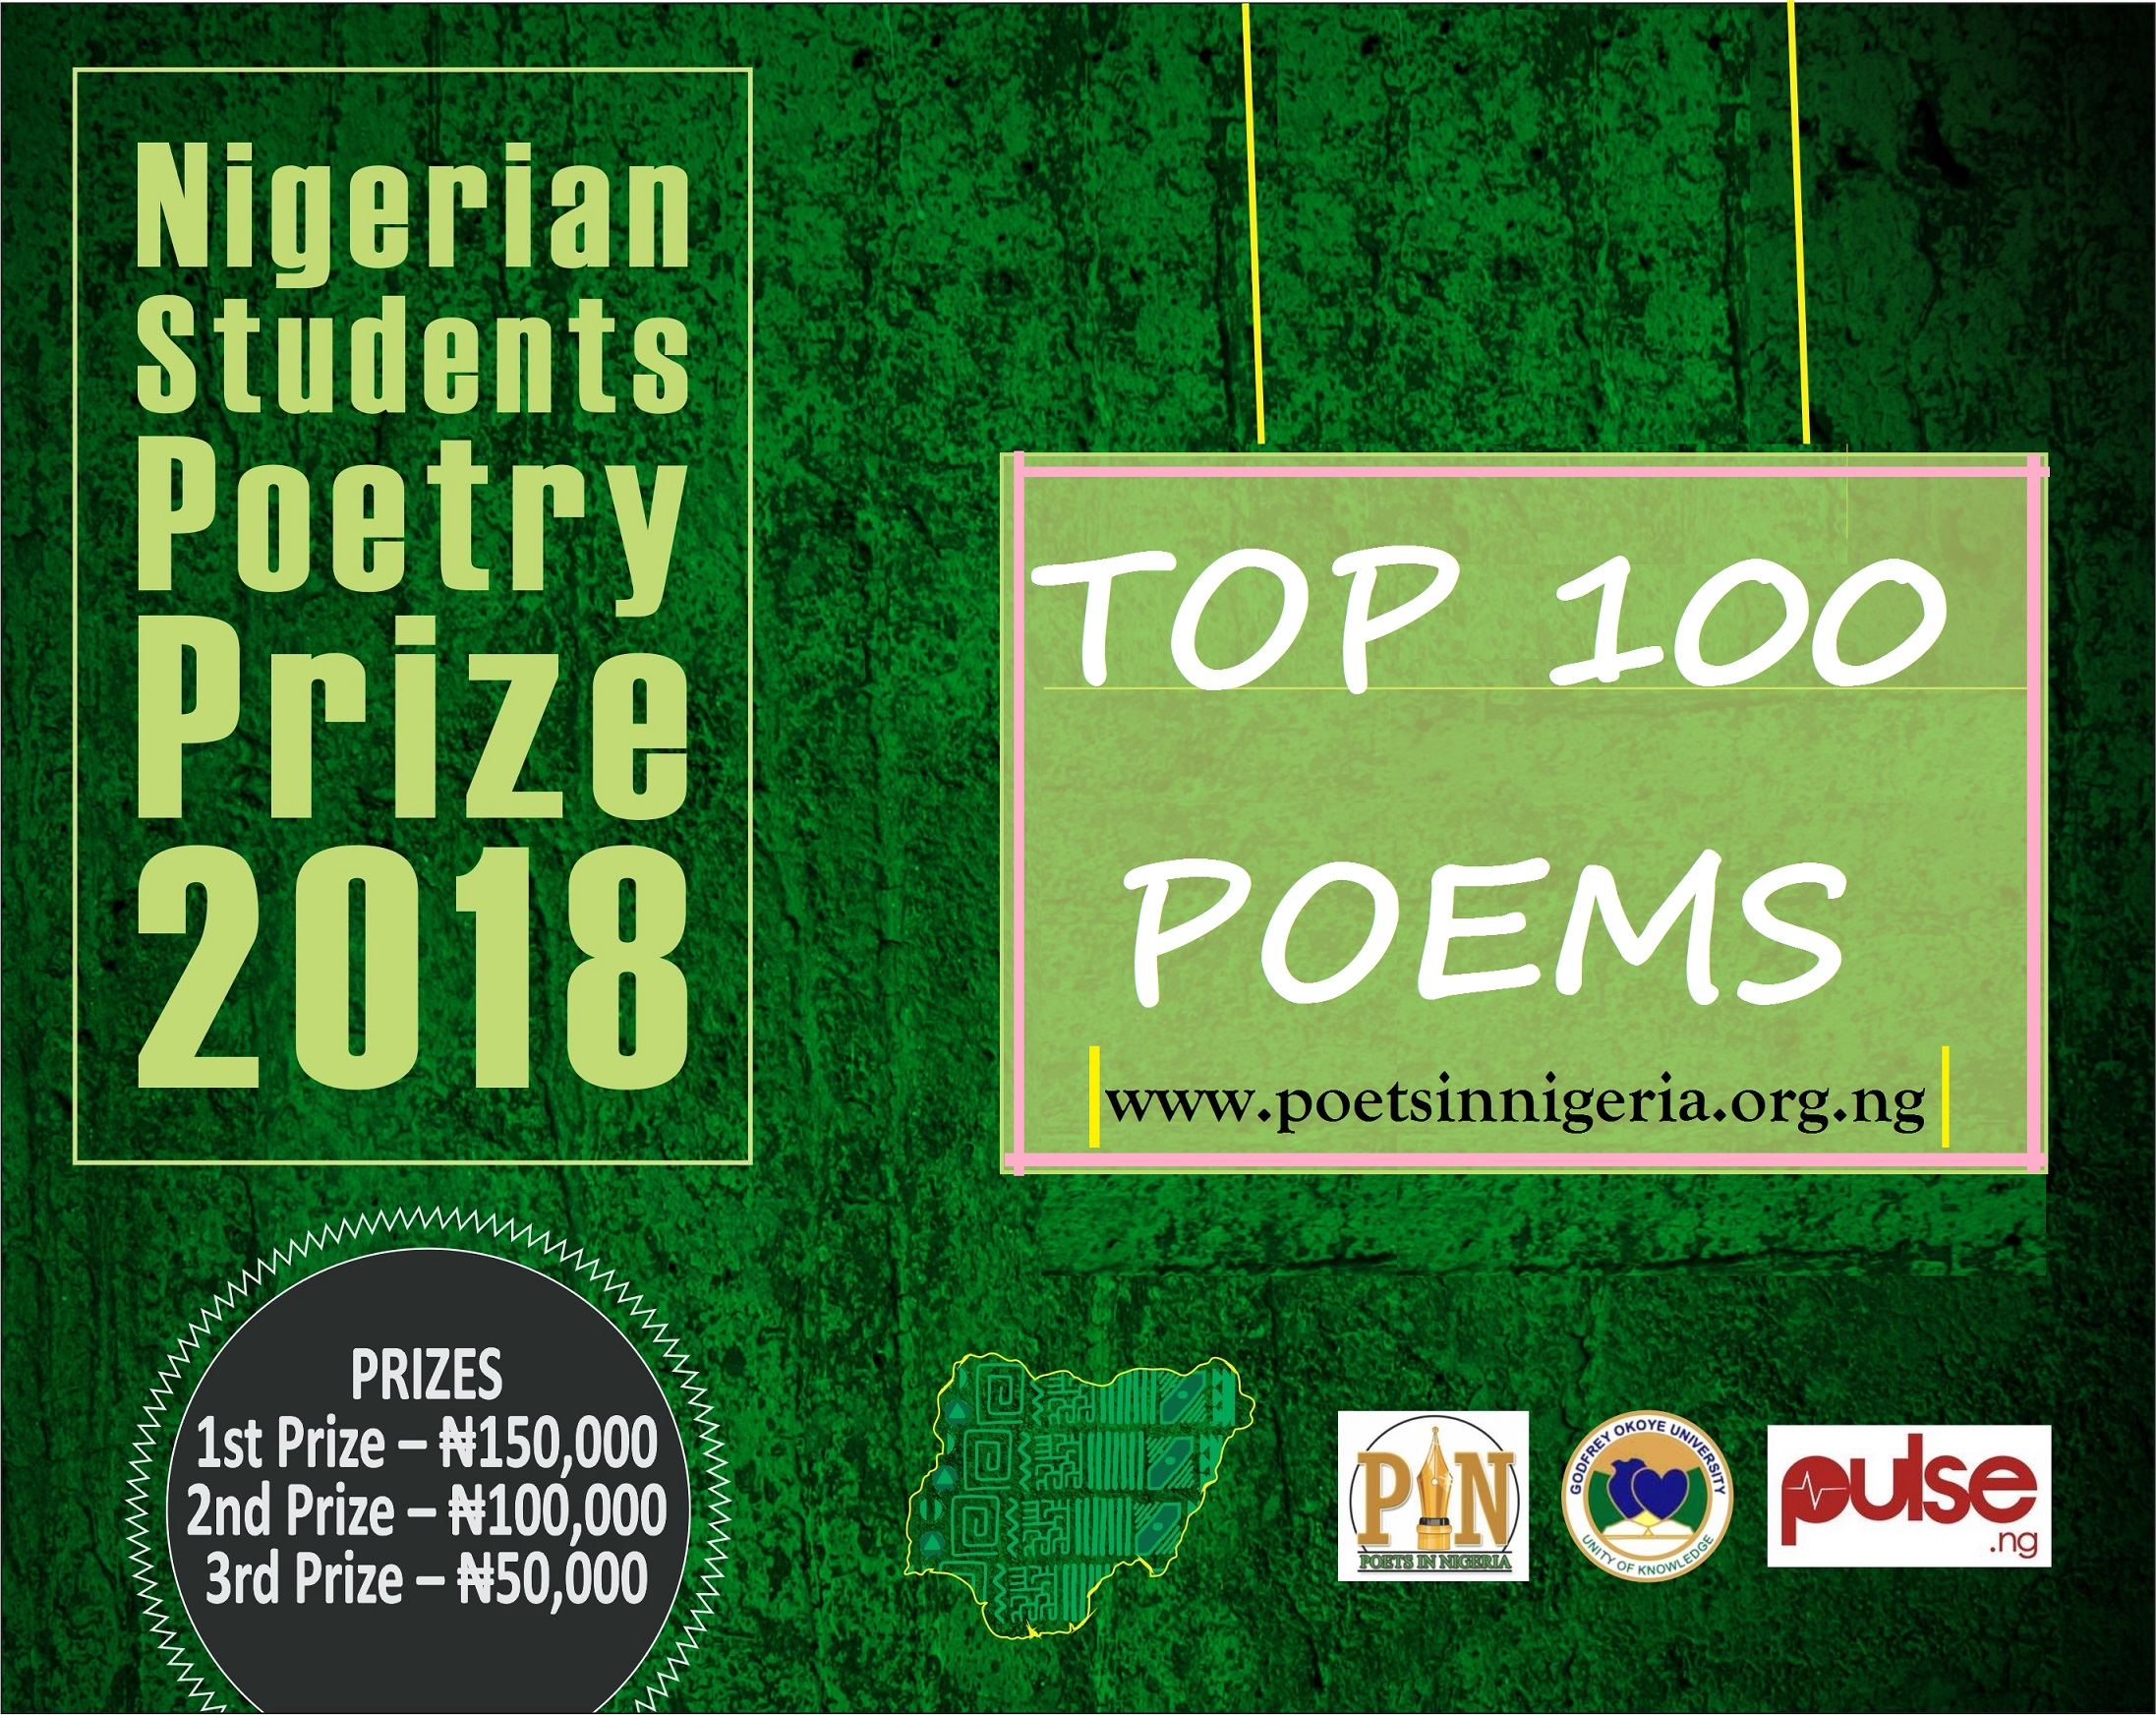 NIGERIAN STUDENTS POETRY PRIZE (NSPP) 2018: TOP 100 POEMS – Poets in